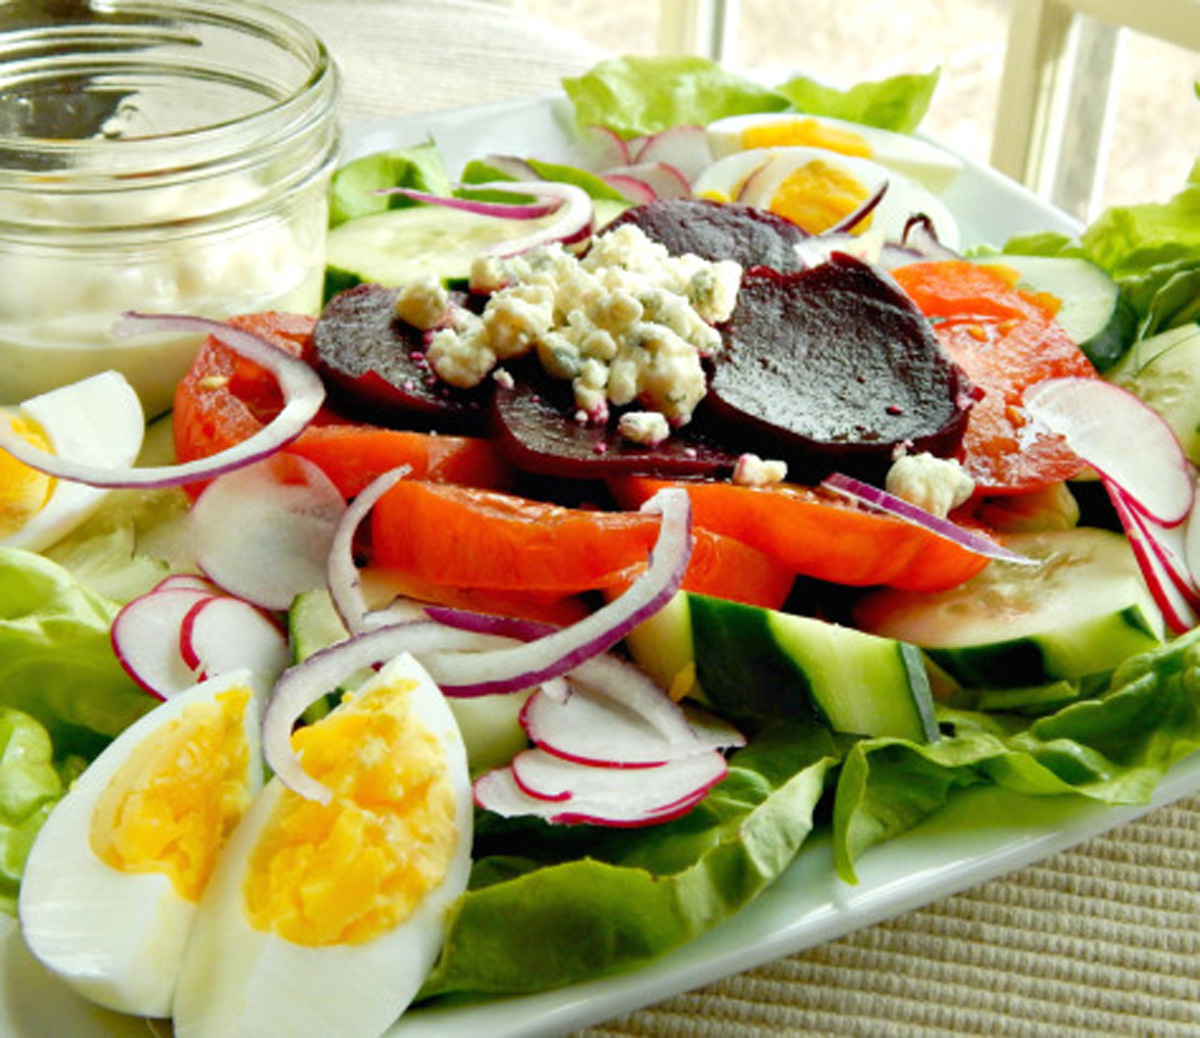 """For a light and fresh start to your St. Patrick's Day meal, try <a href=""""http://frugalhausfrau.com/2015/03/13/irish-pub-salad/"""">The Frugal Hausfrau</a>'s Irish pub salad. This blogger uses in-season vegetables such as bibb and butter lettuces as a base for the salad, and tops it off with pickled beets, hardboiled eggs and bleu cheese."""